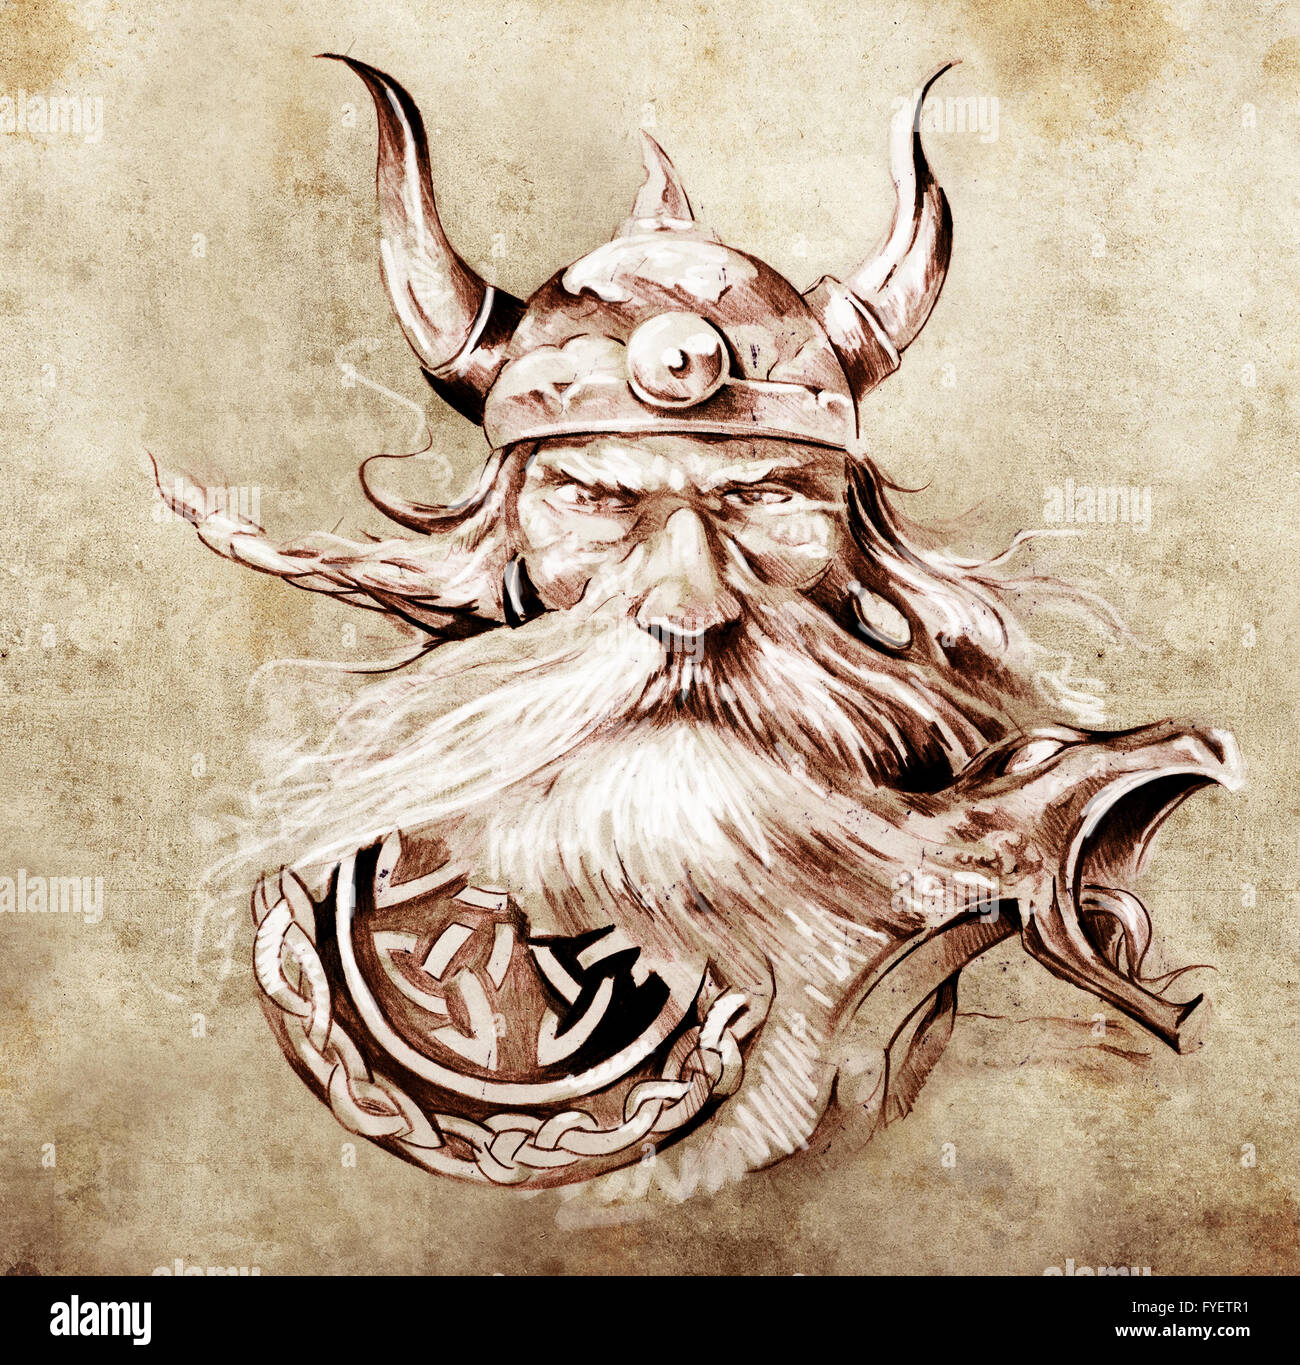 Tattoo art, sketch of a viking warrior, Illustration of an ancient wooden figurehead on a Viking longboat - Stock Image